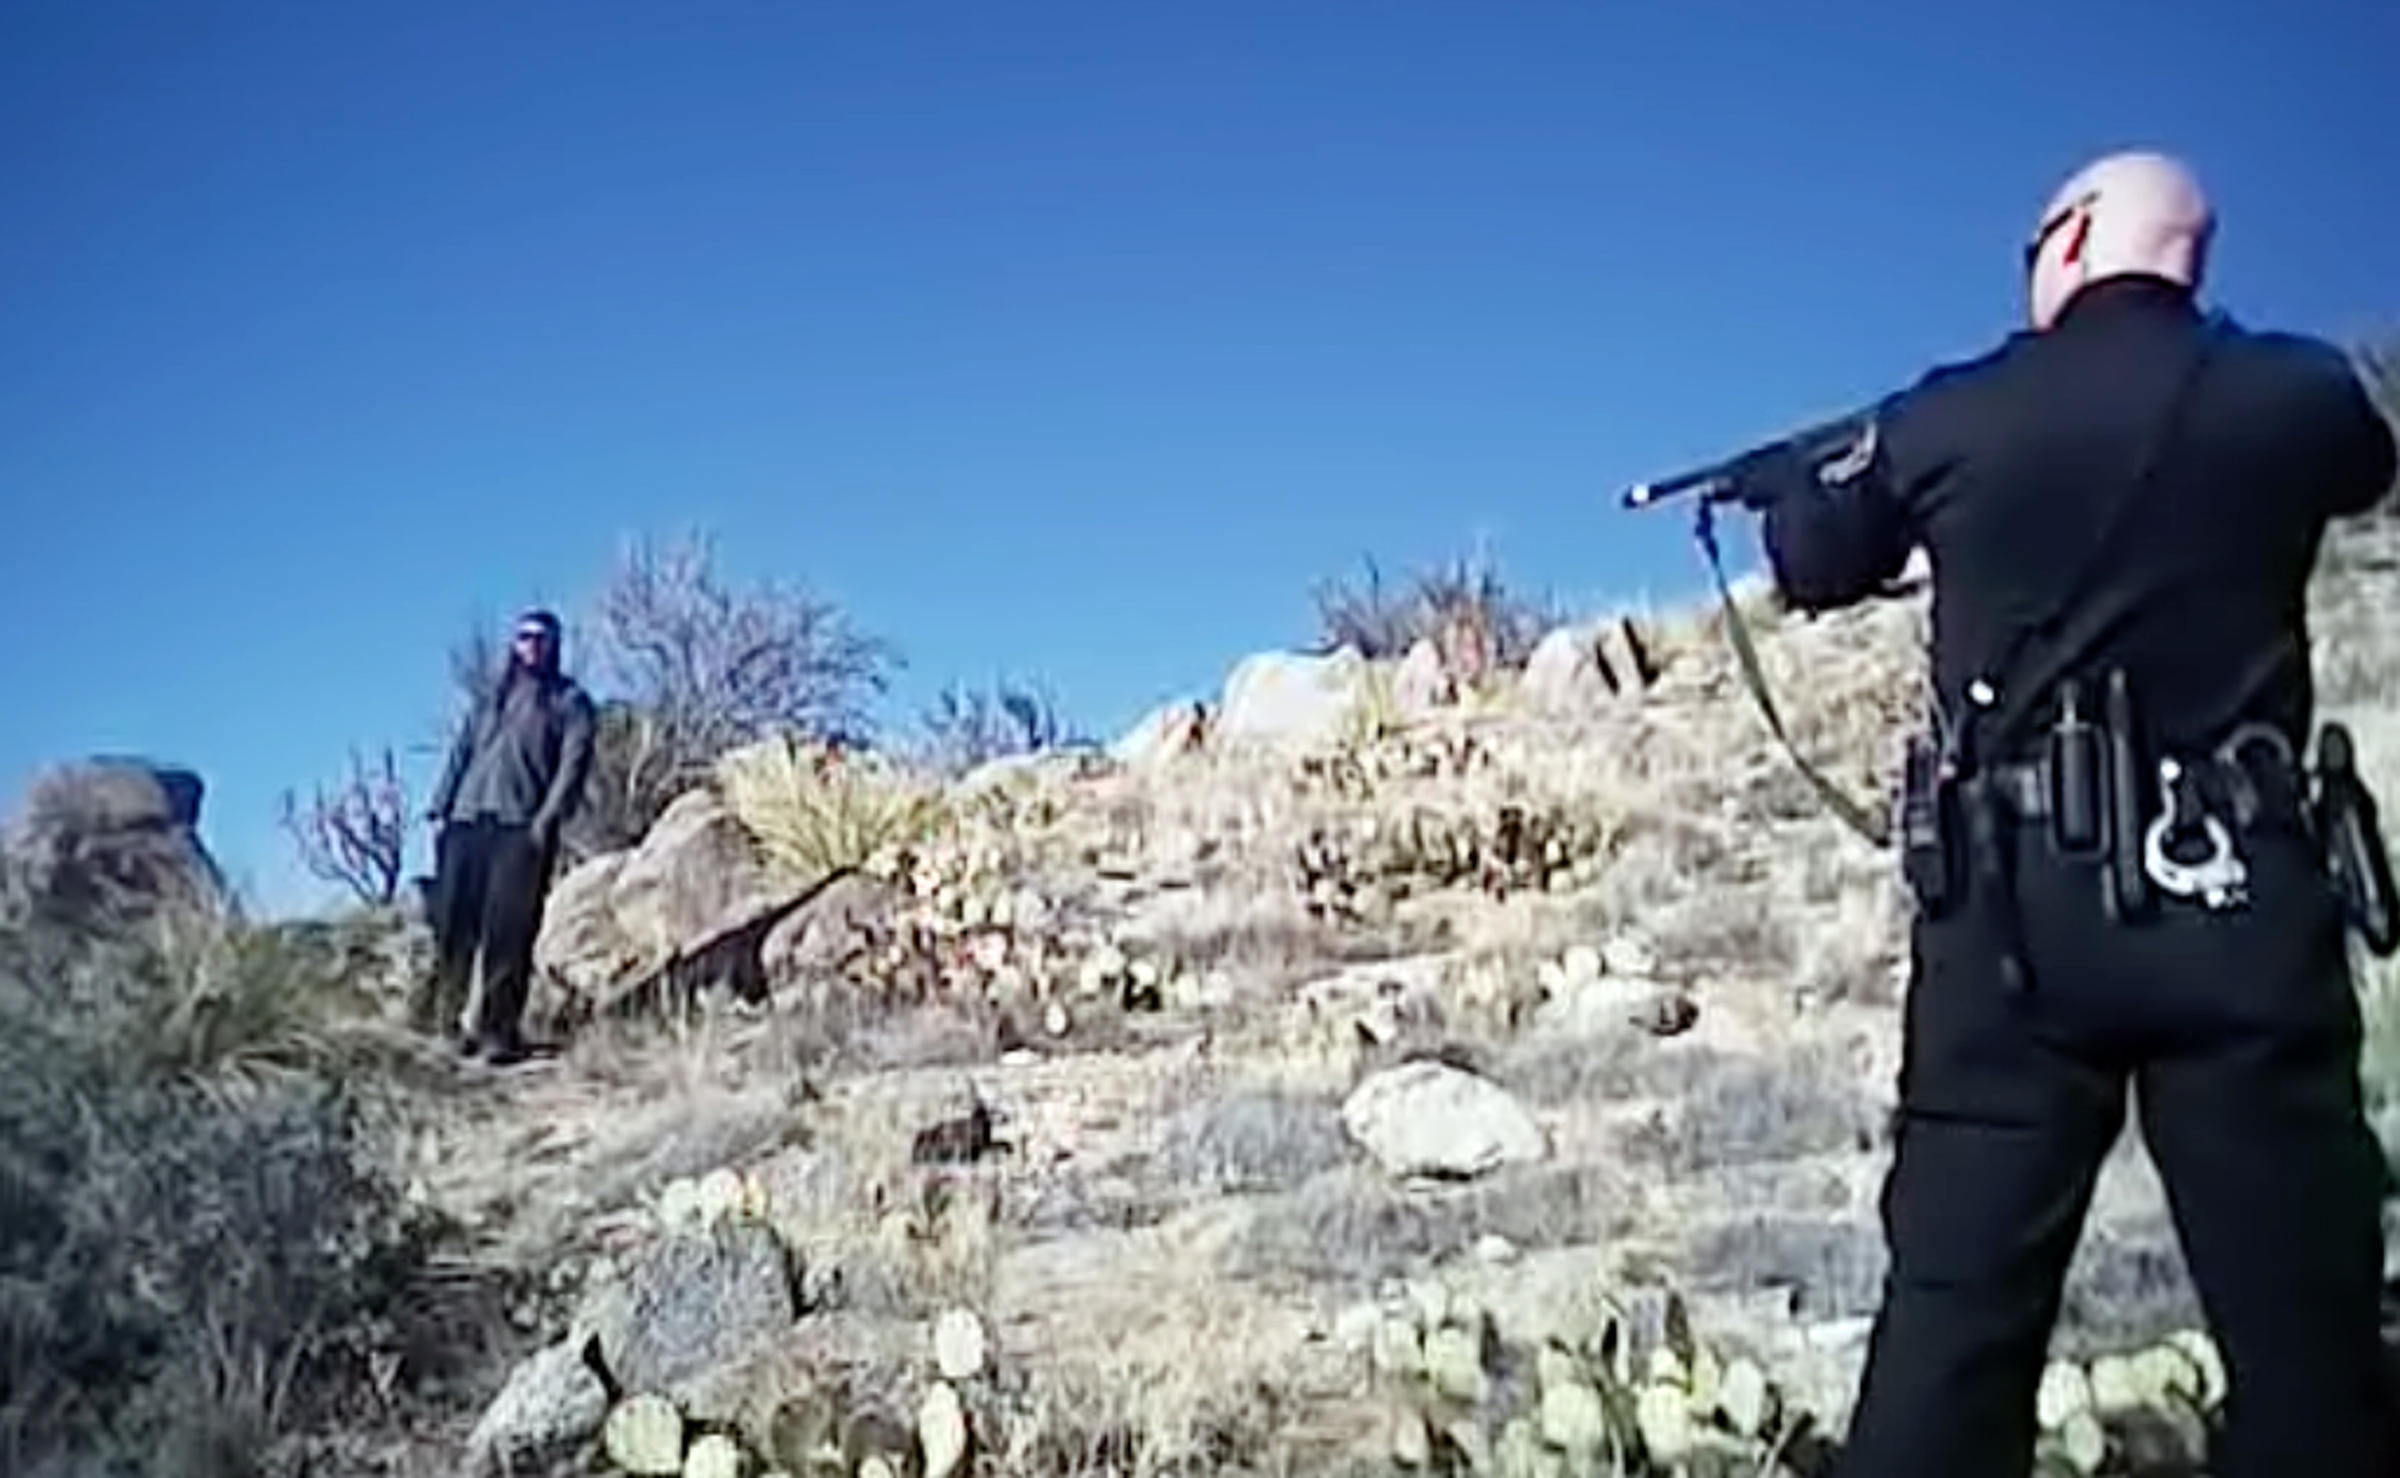 This image made from a March 16, 2014 video shows James Boyd, 38, left, during a standoff with officers in the Sandia foothills in Albuquerque, N.M., before police fatally shot him. Albuquerque Police Department via Associated Press